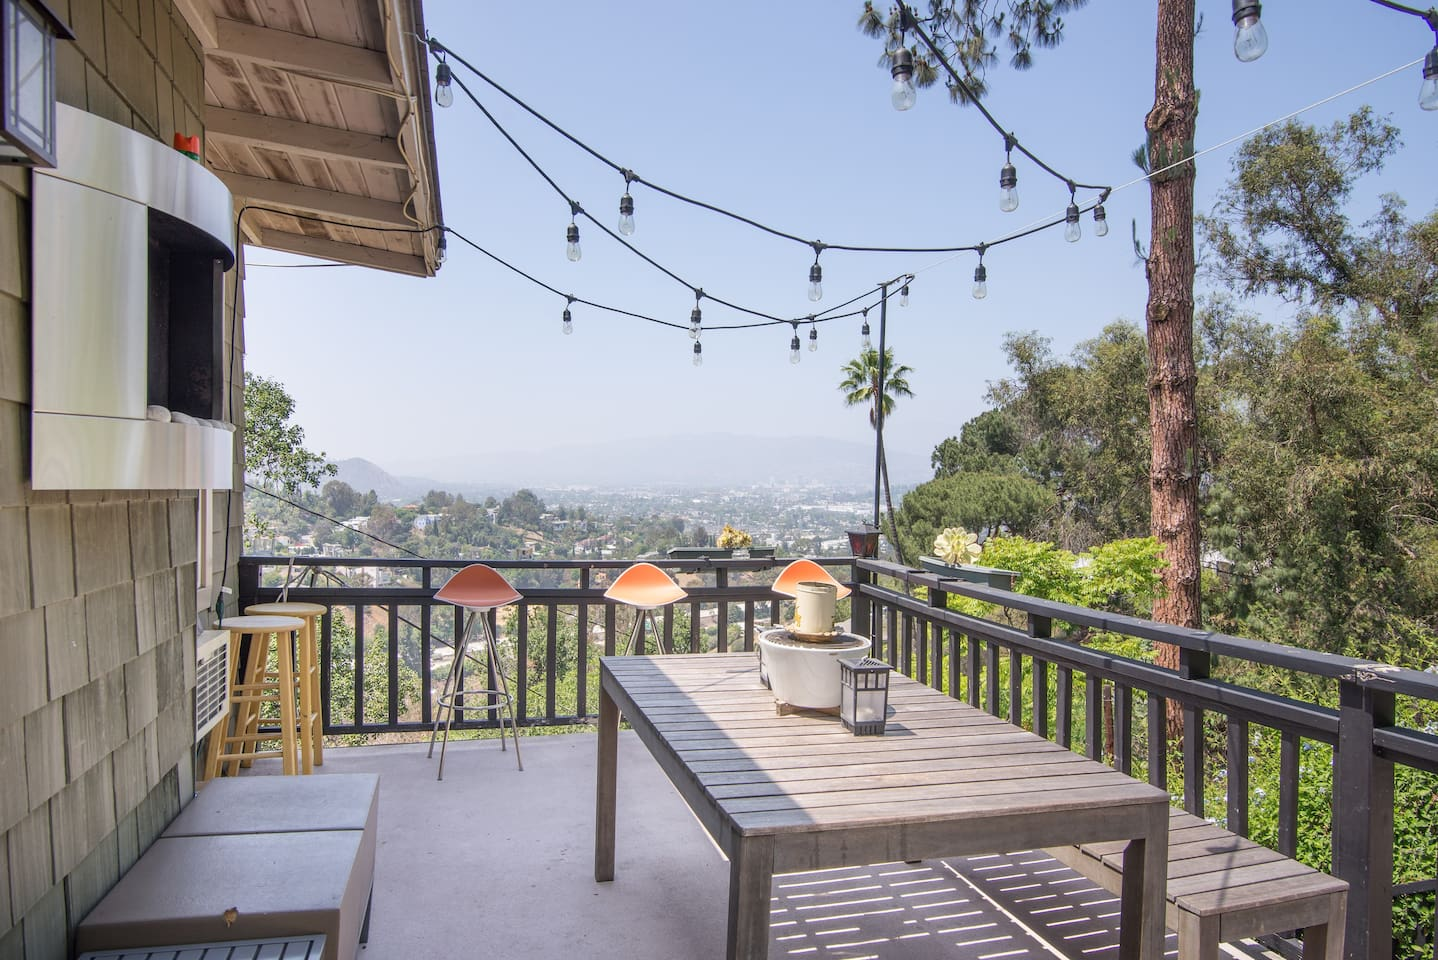 Shared Patio space provides beautiful views and a relaxing space to chill or socialize.